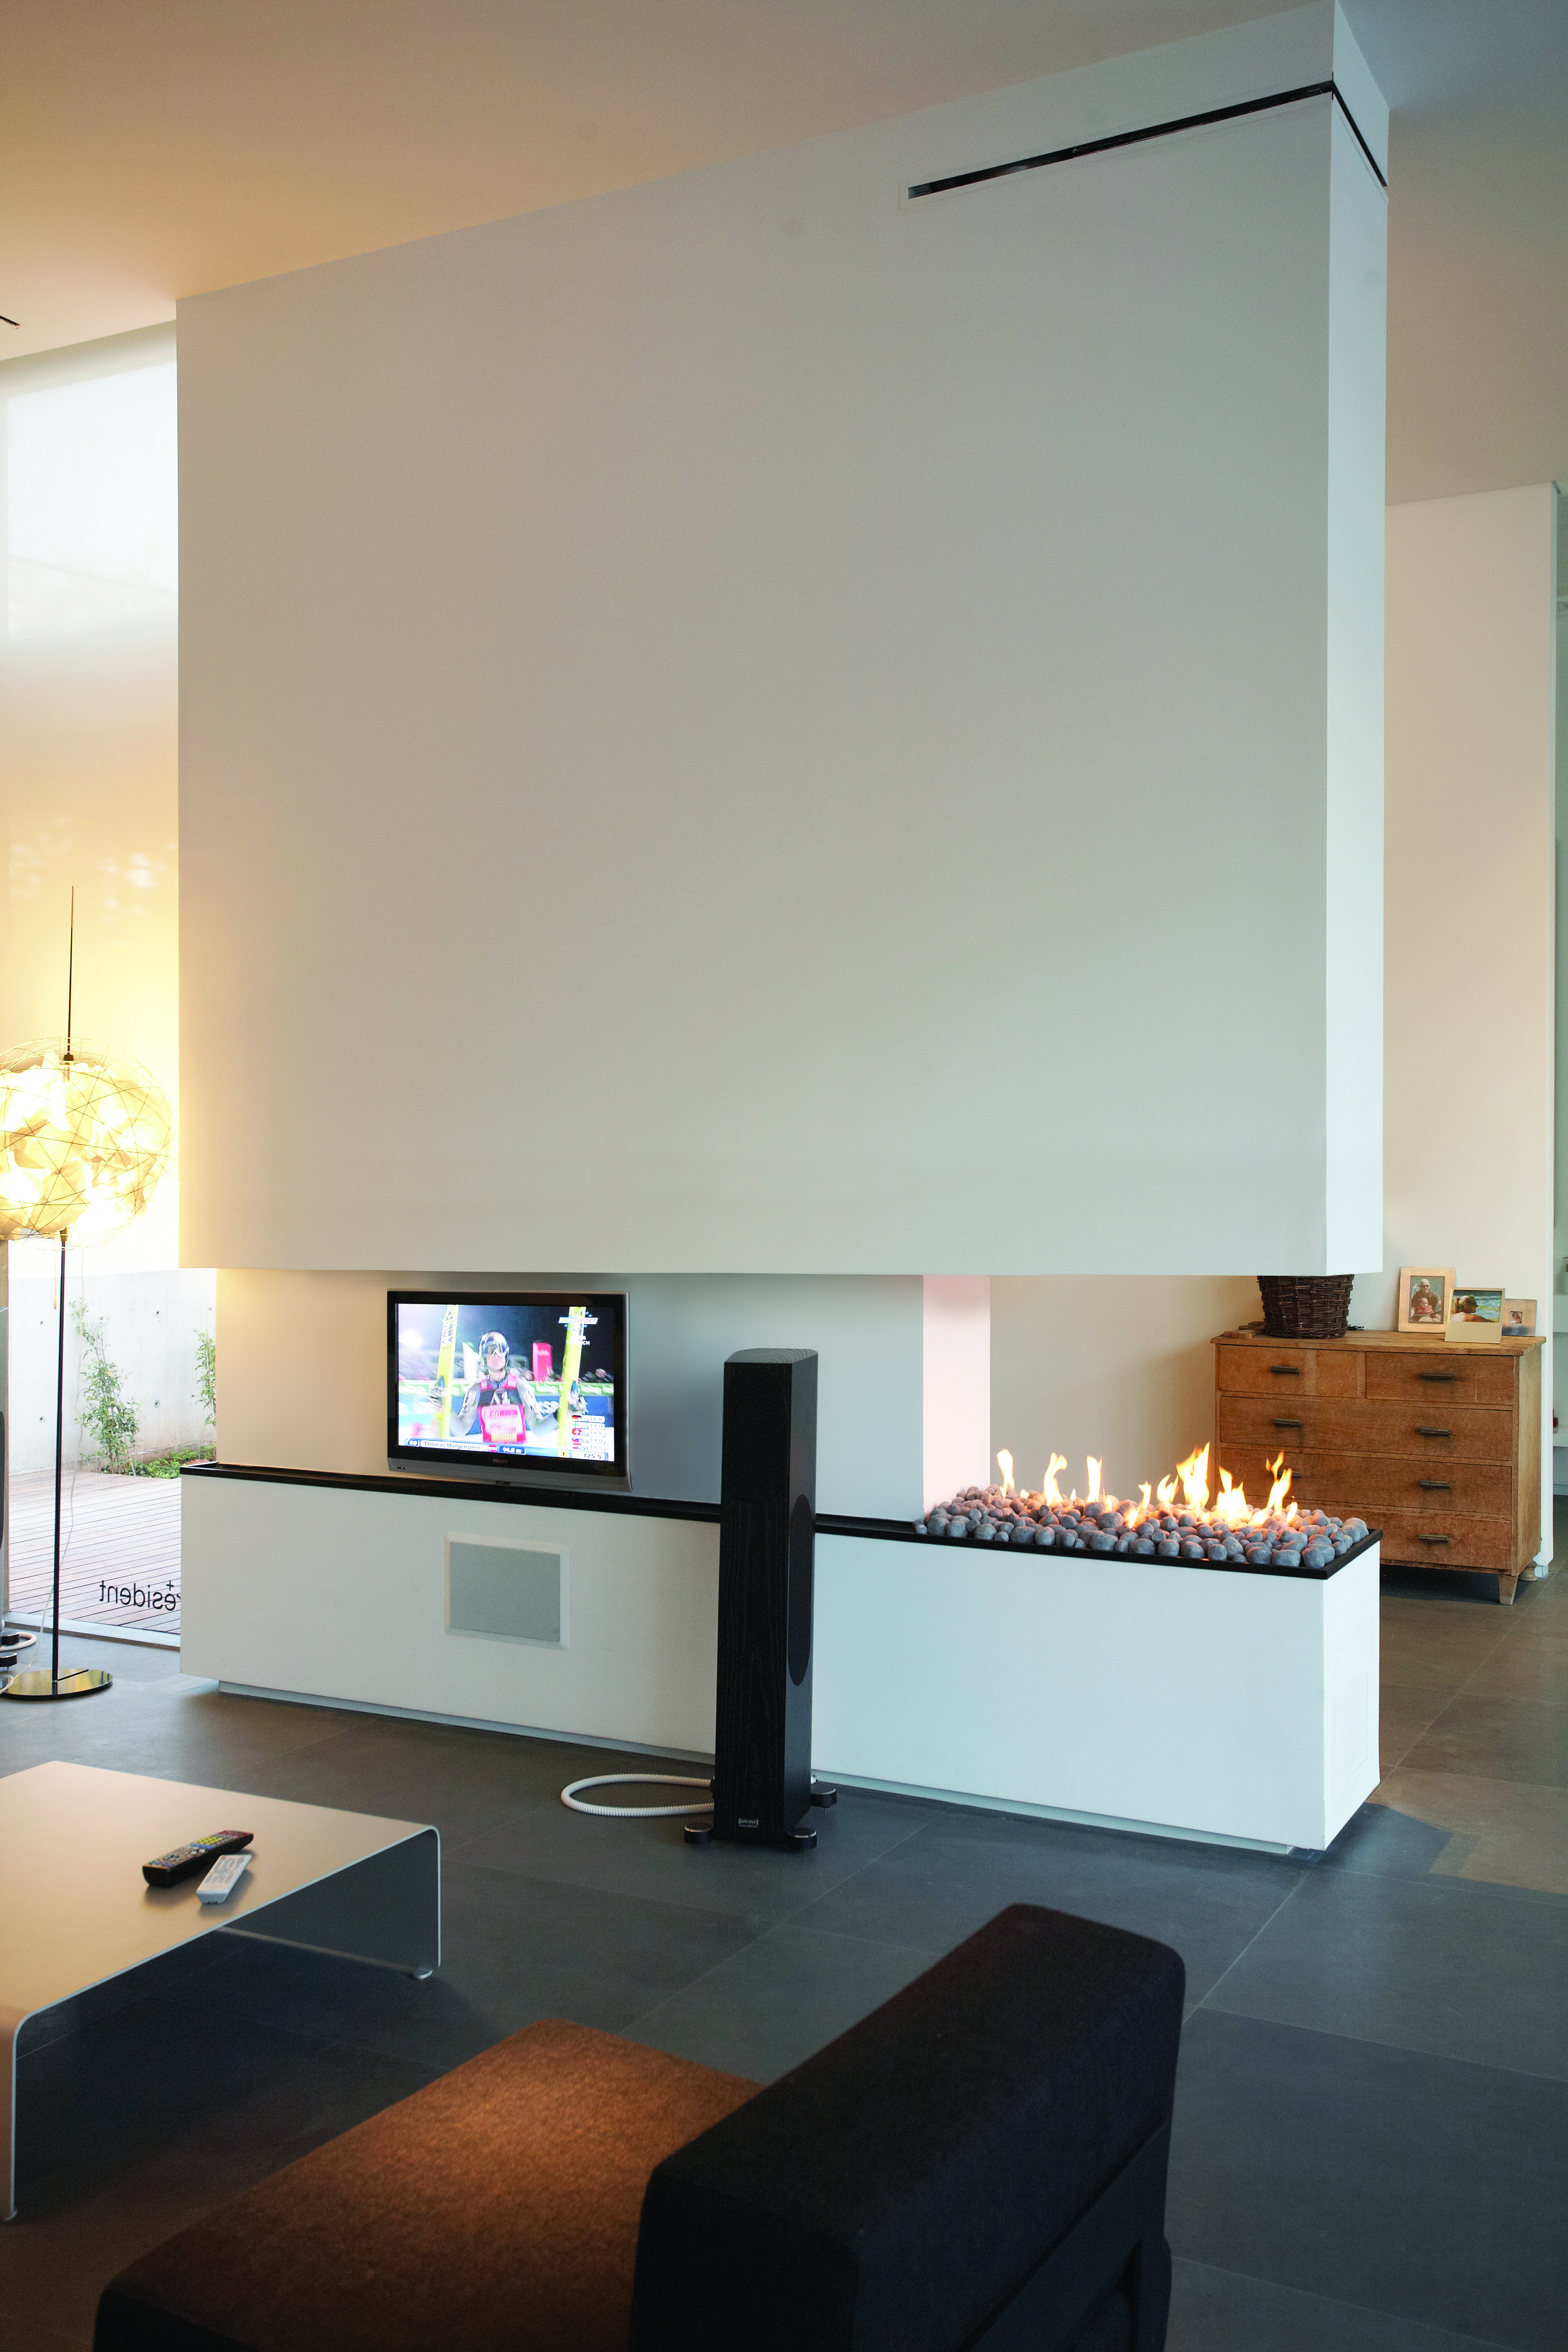 ortal space creator 150 three sided gas fireplace from robeys